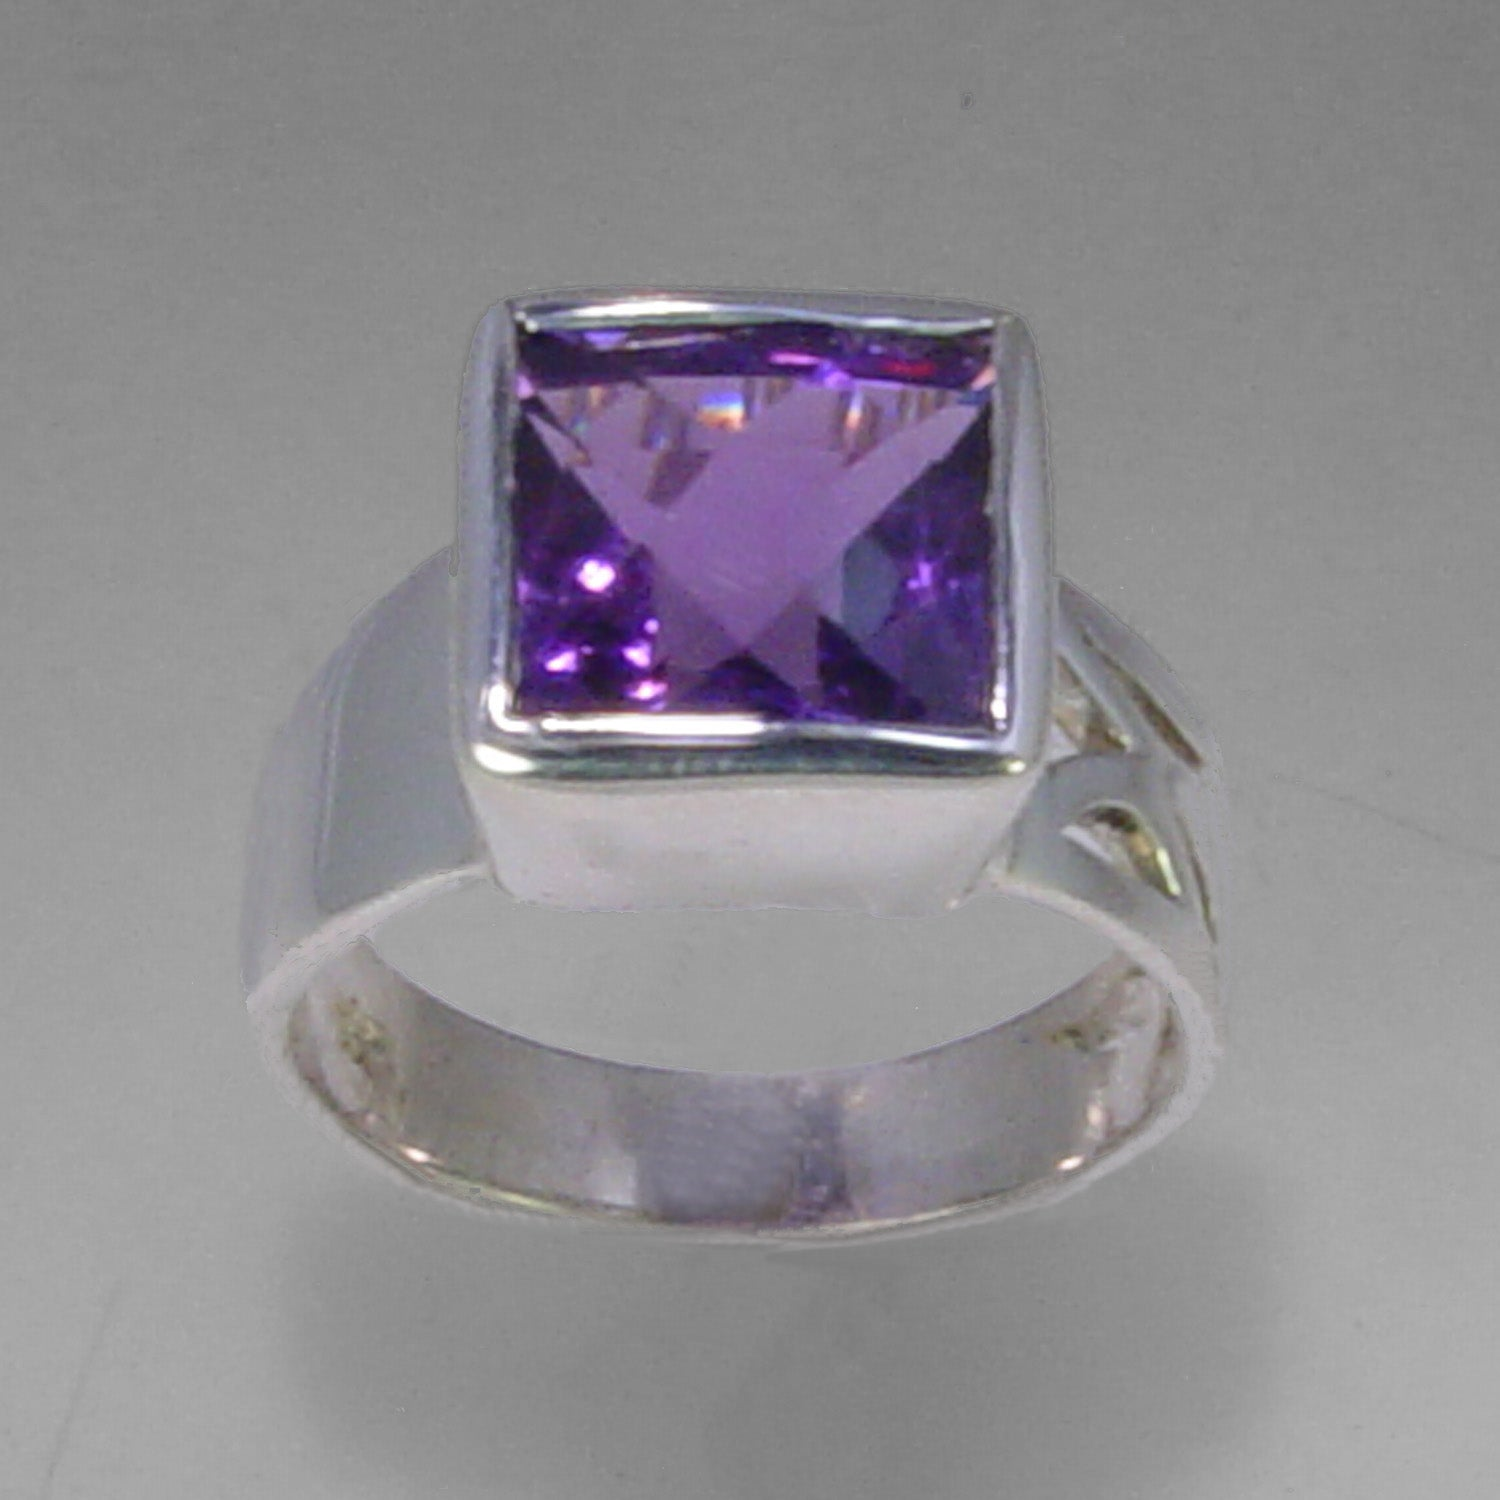 Amethyst 5 ct Square Cut Bezel Set Sterling Silver Ring, Size 7